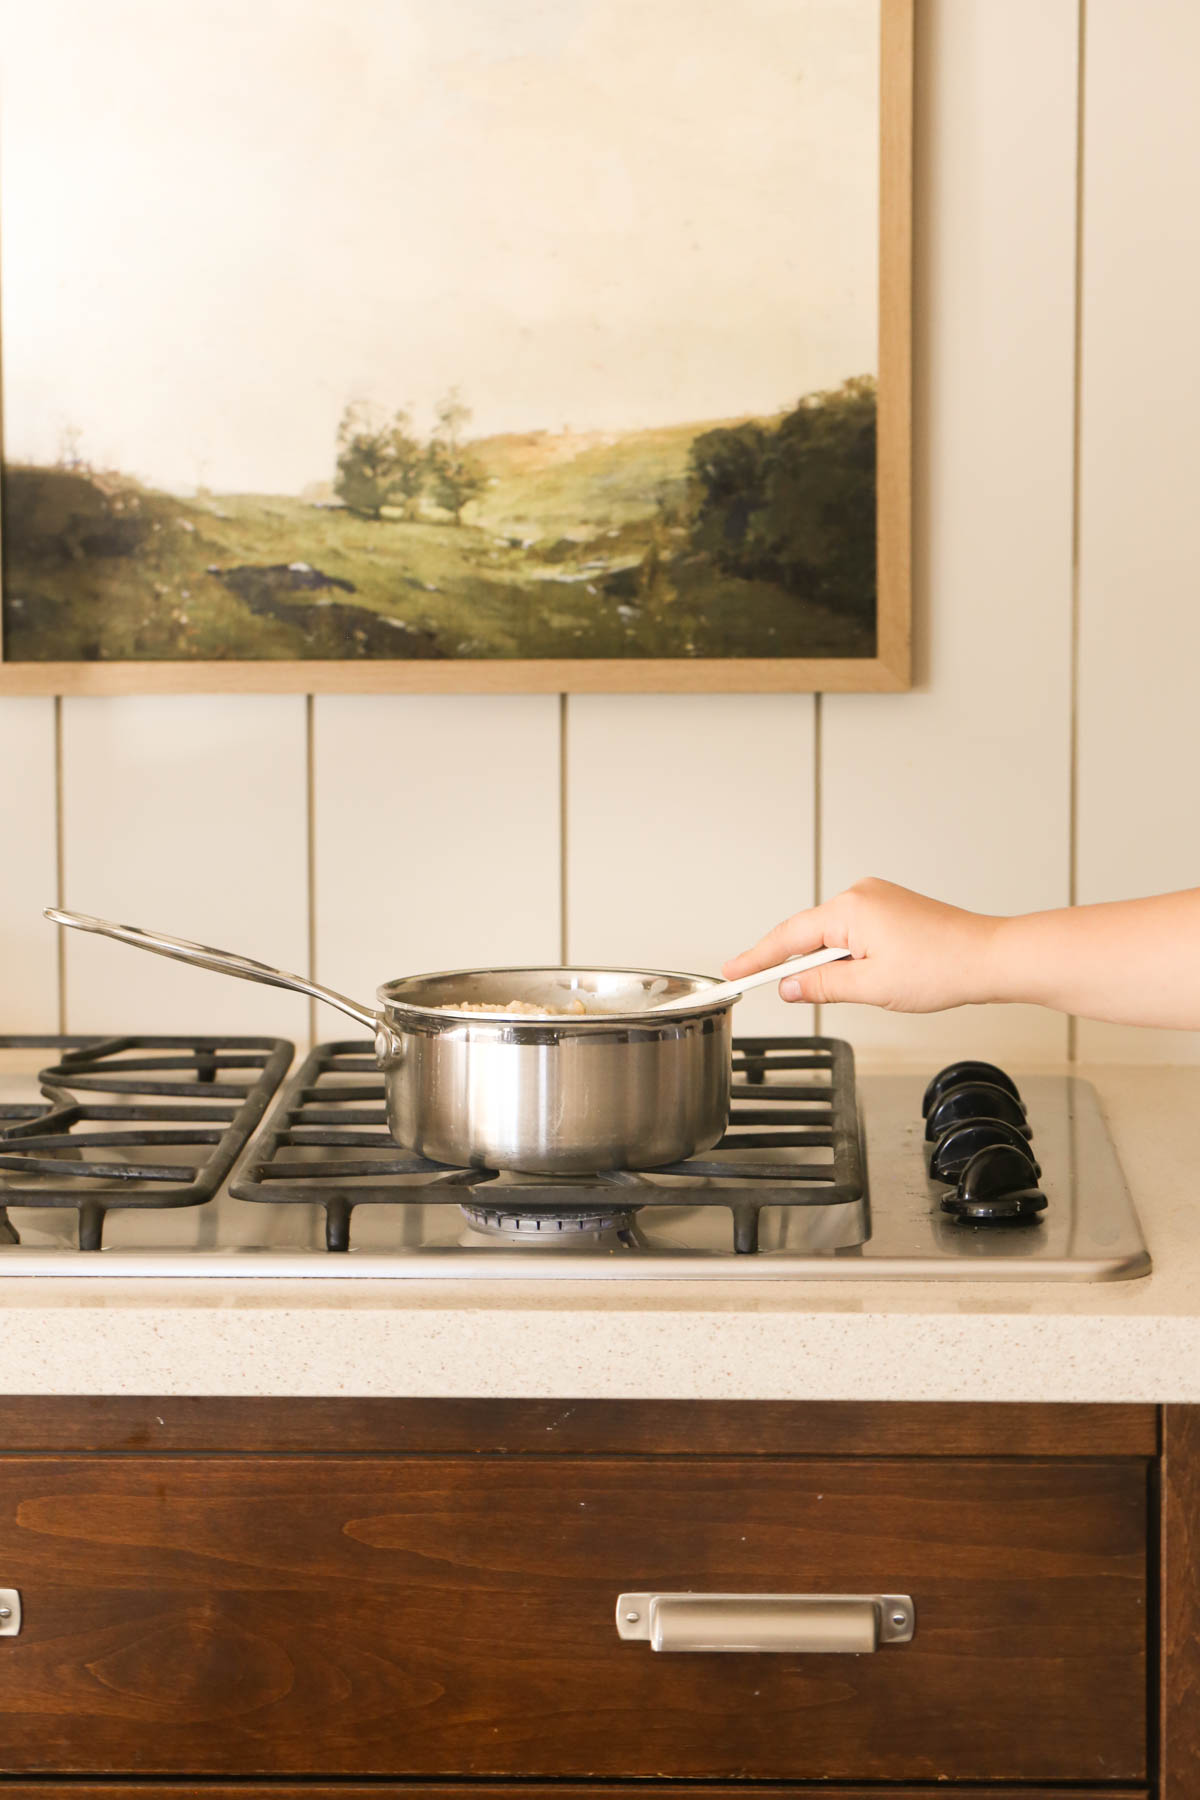 A pot of oatmeal on a gas stove top with a hand on the stirring utensil.